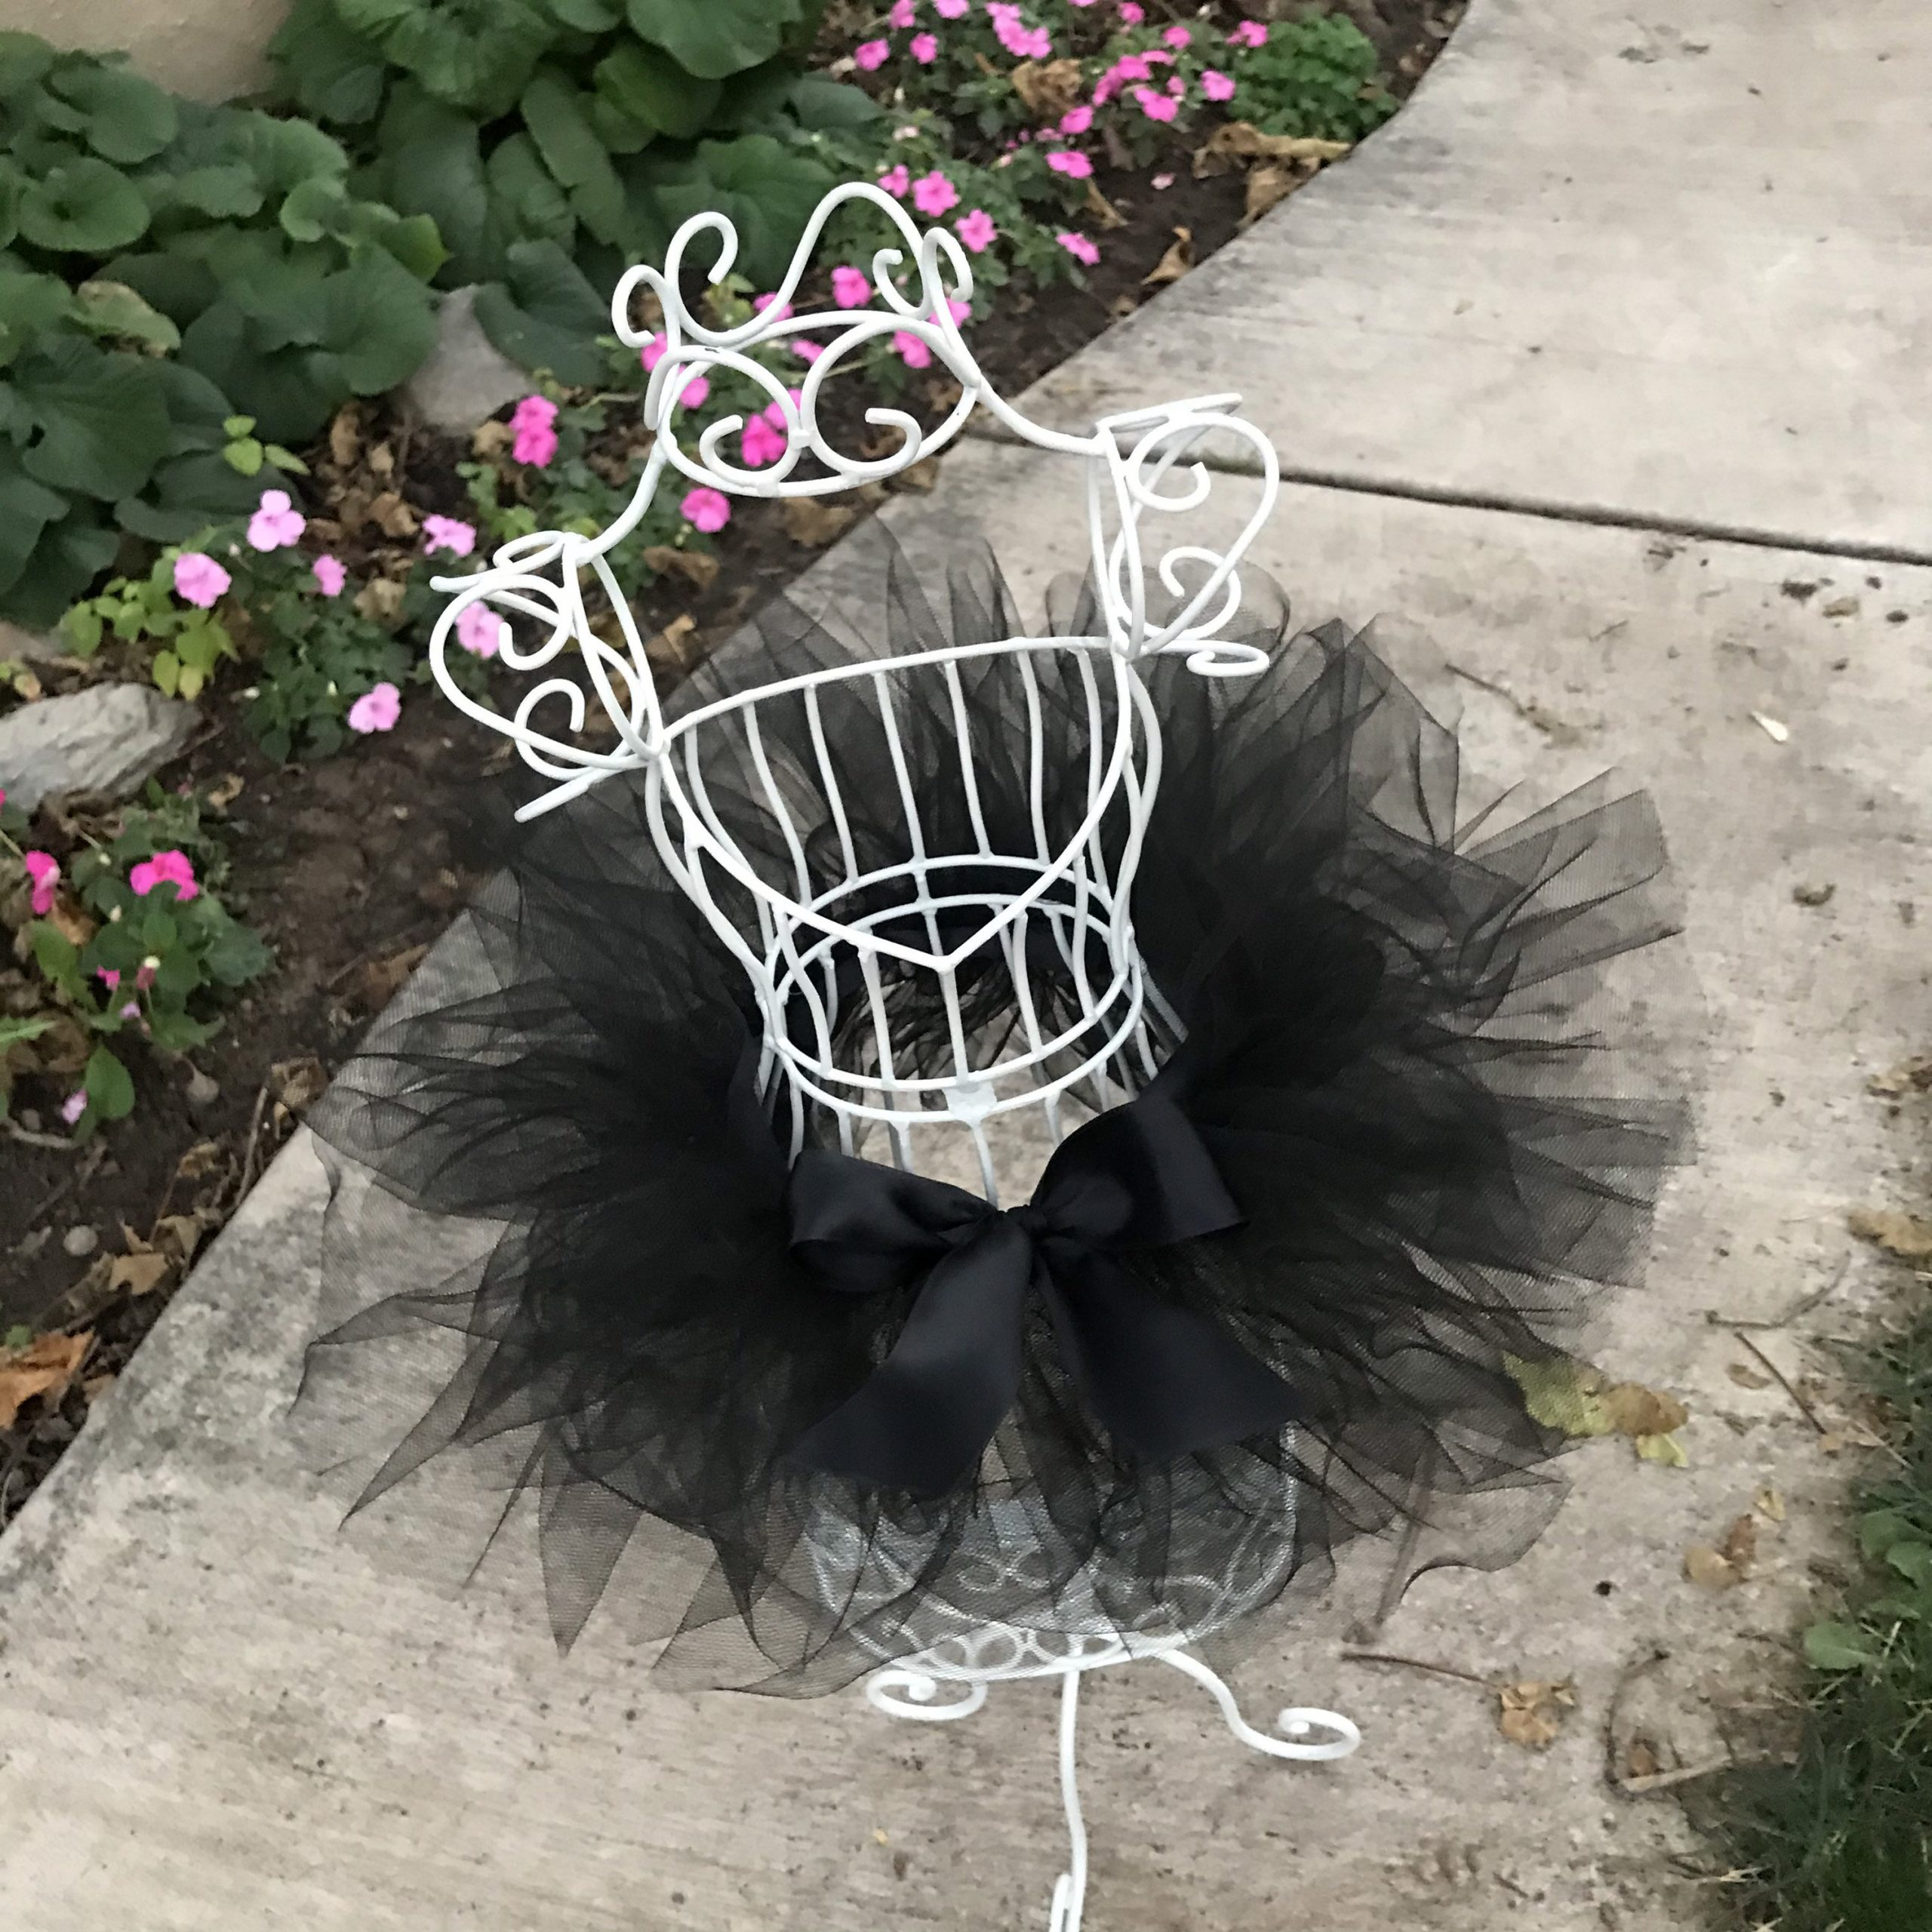 Black Tutu Baby Halloween Costume Cat Witch Outfit Infant Toddler Girl Child Dress Up First Birthday Gift Ideas Cake Smash Photo Shoot Props